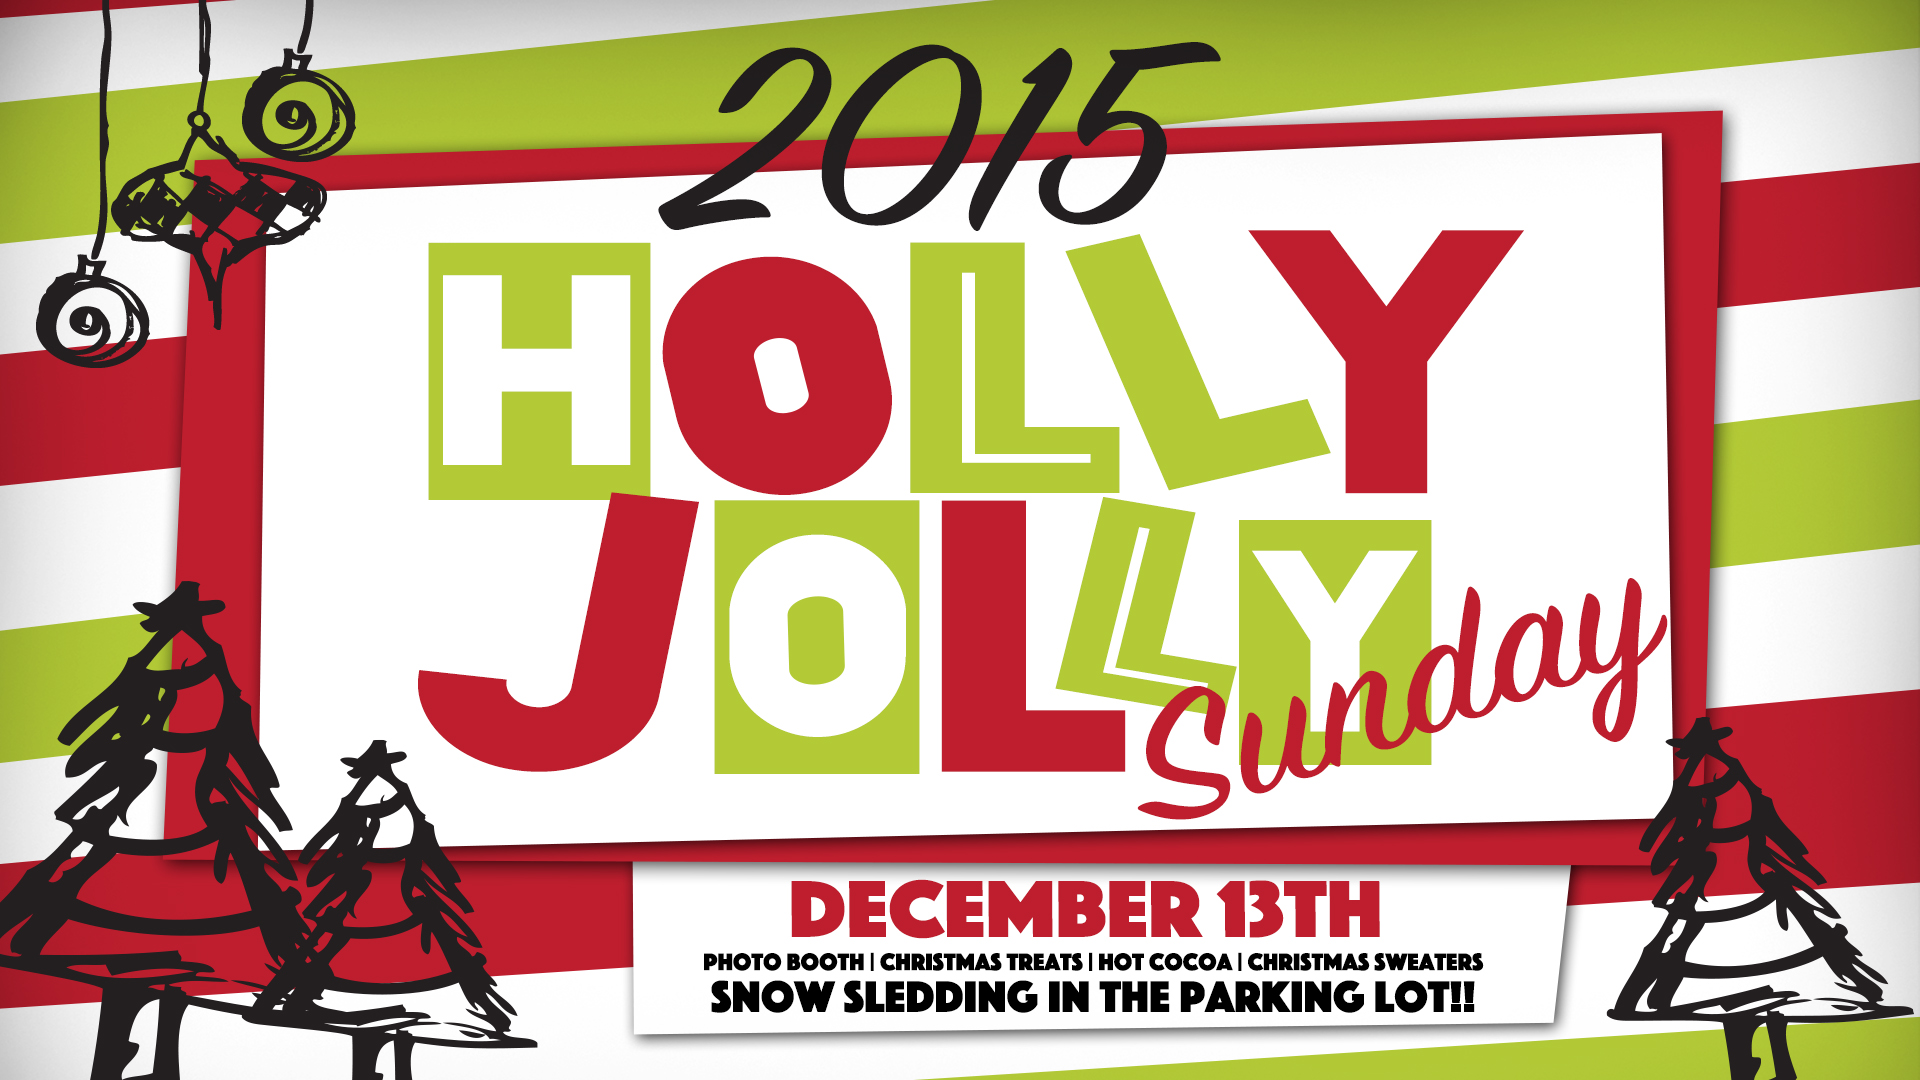 HOLLY JOLLY Sunday - December 13   The most fun Sunday morning of the season is back! We will have Christmas treats in the lobby, the Ugly Christmas Sweater Photo Booth (step-up your game people!), and SNOW SLEDDING in the parking lot!! That's right we said SNOW SLEDDING. Invite every stinkin' person you know to join us for a fun morning at Crossbridge.